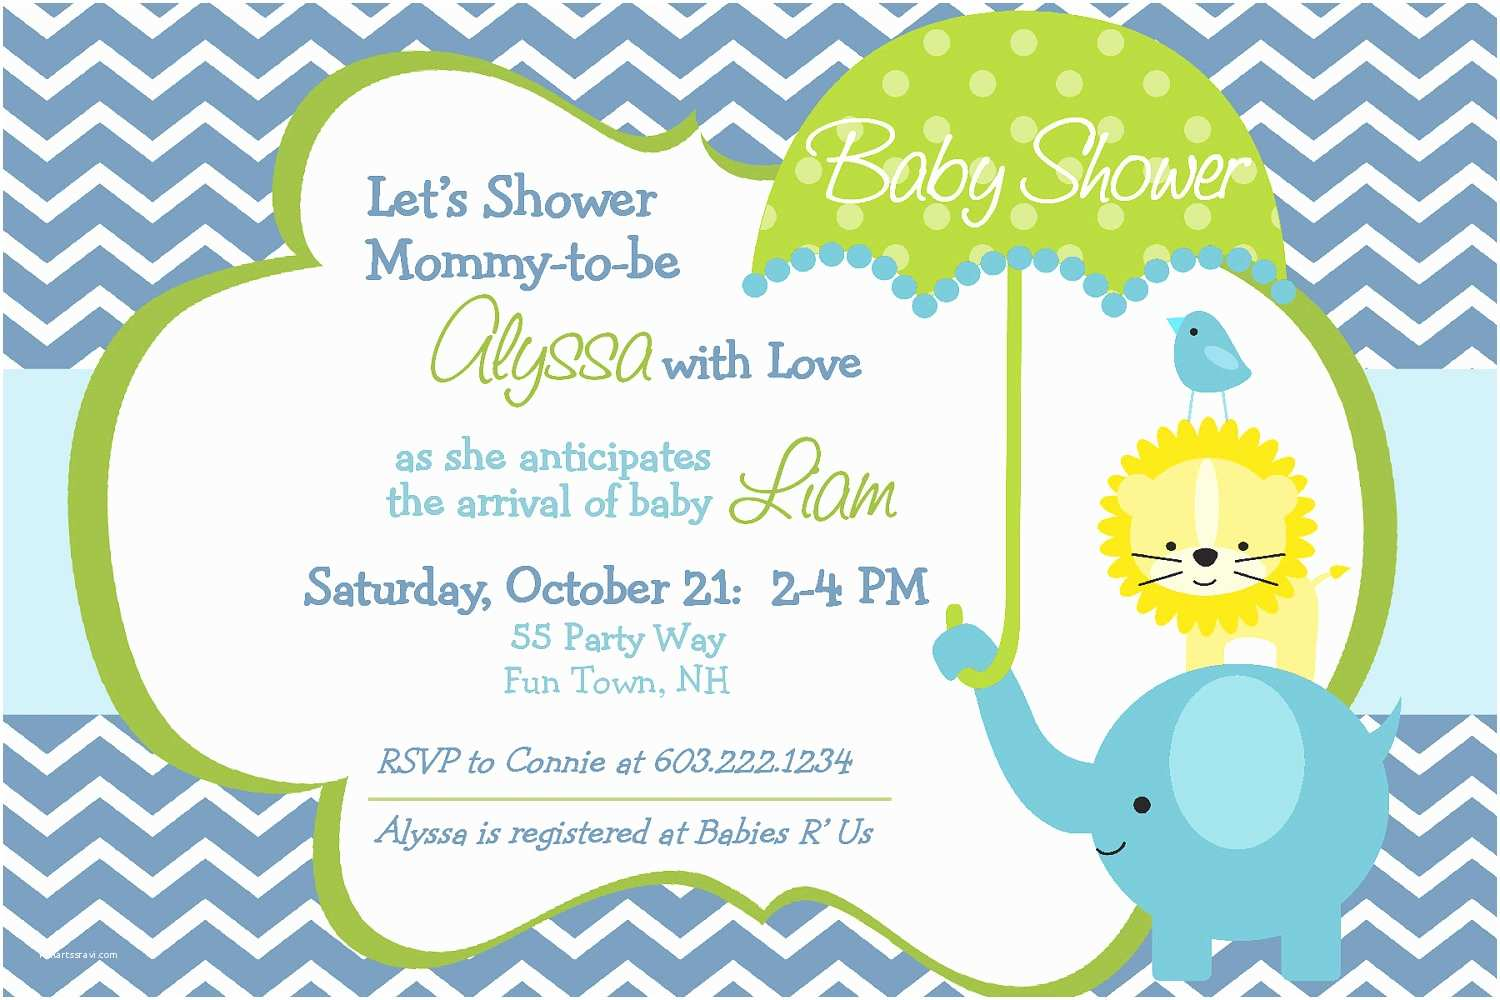 Free Baby Shower Invitations Baby Shower Invitations for Boy & Girls Baby Shower